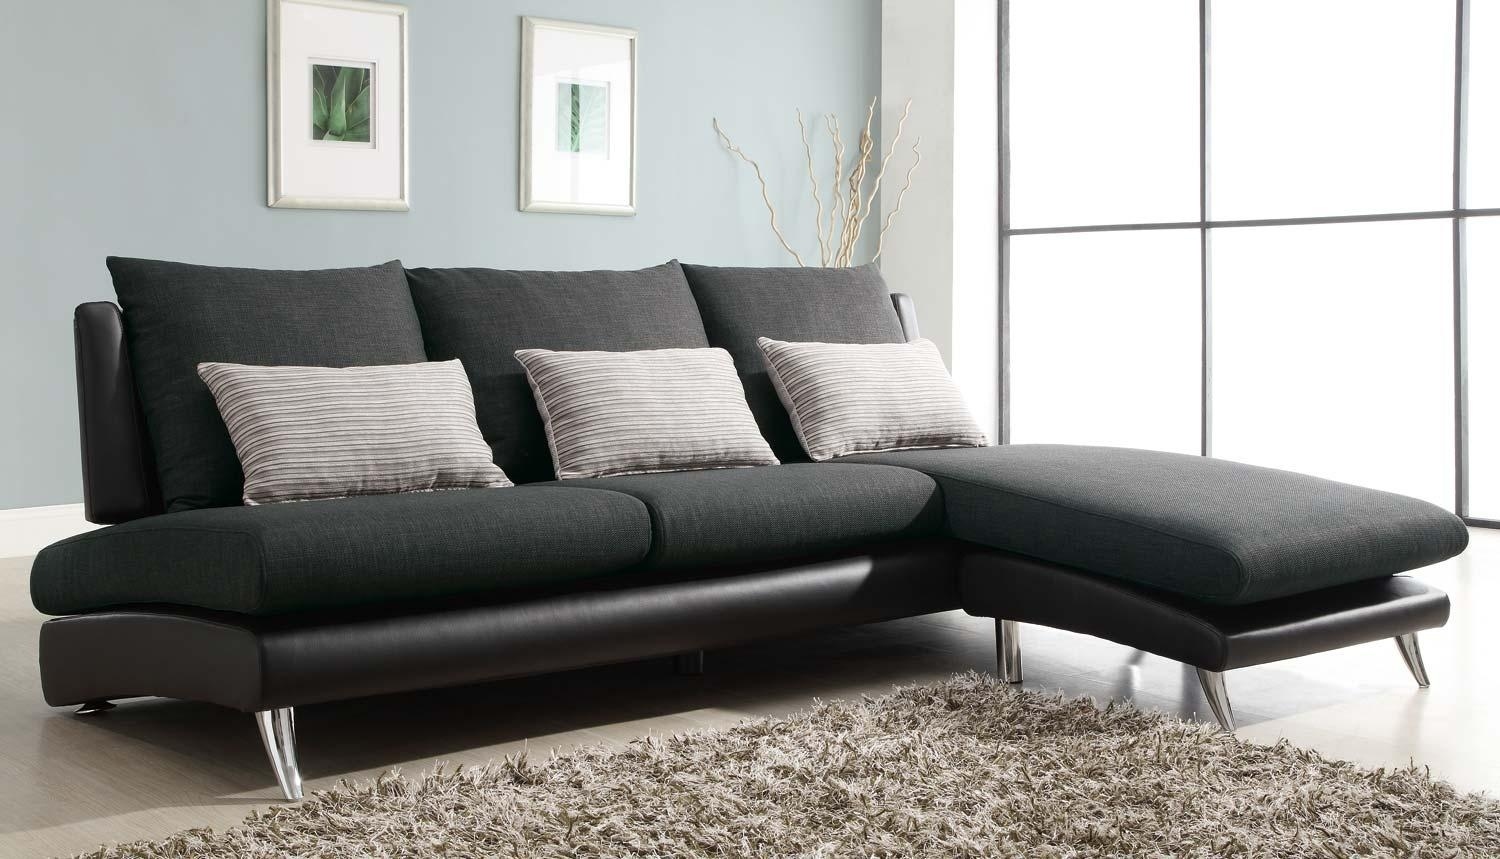 Homelegance Codman Reversible Sectional Sofa Chaise – Dark Grey Inside Black Vinyl Sofas (Image 8 of 20)